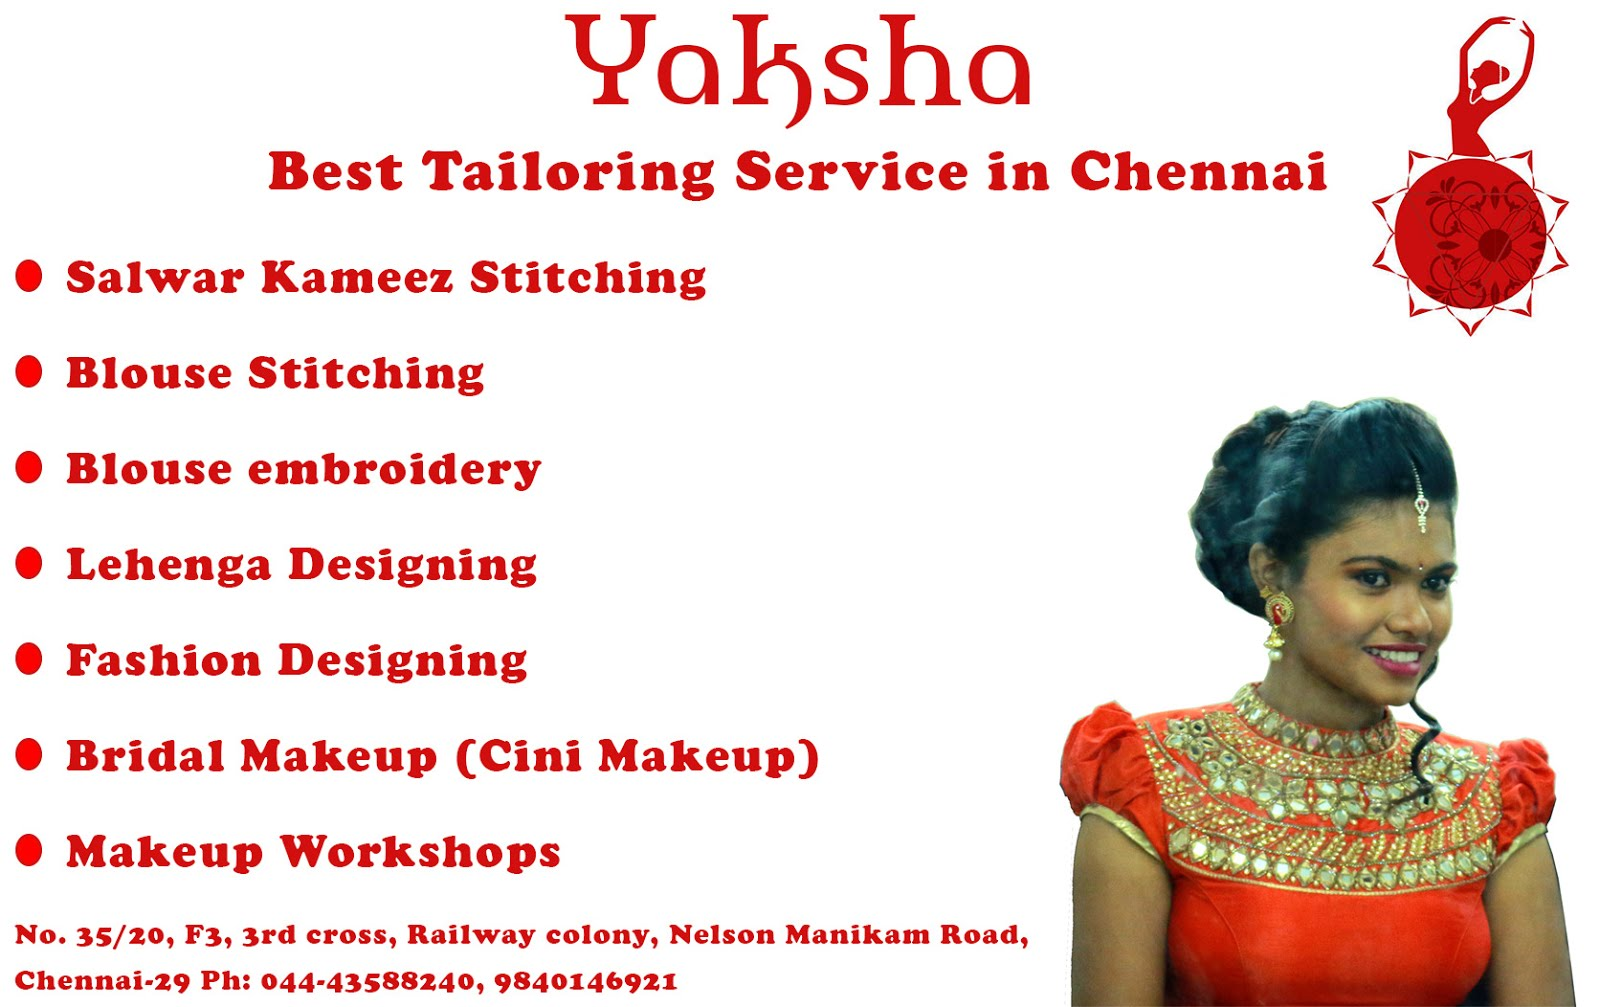 Tailoring Service in chennai